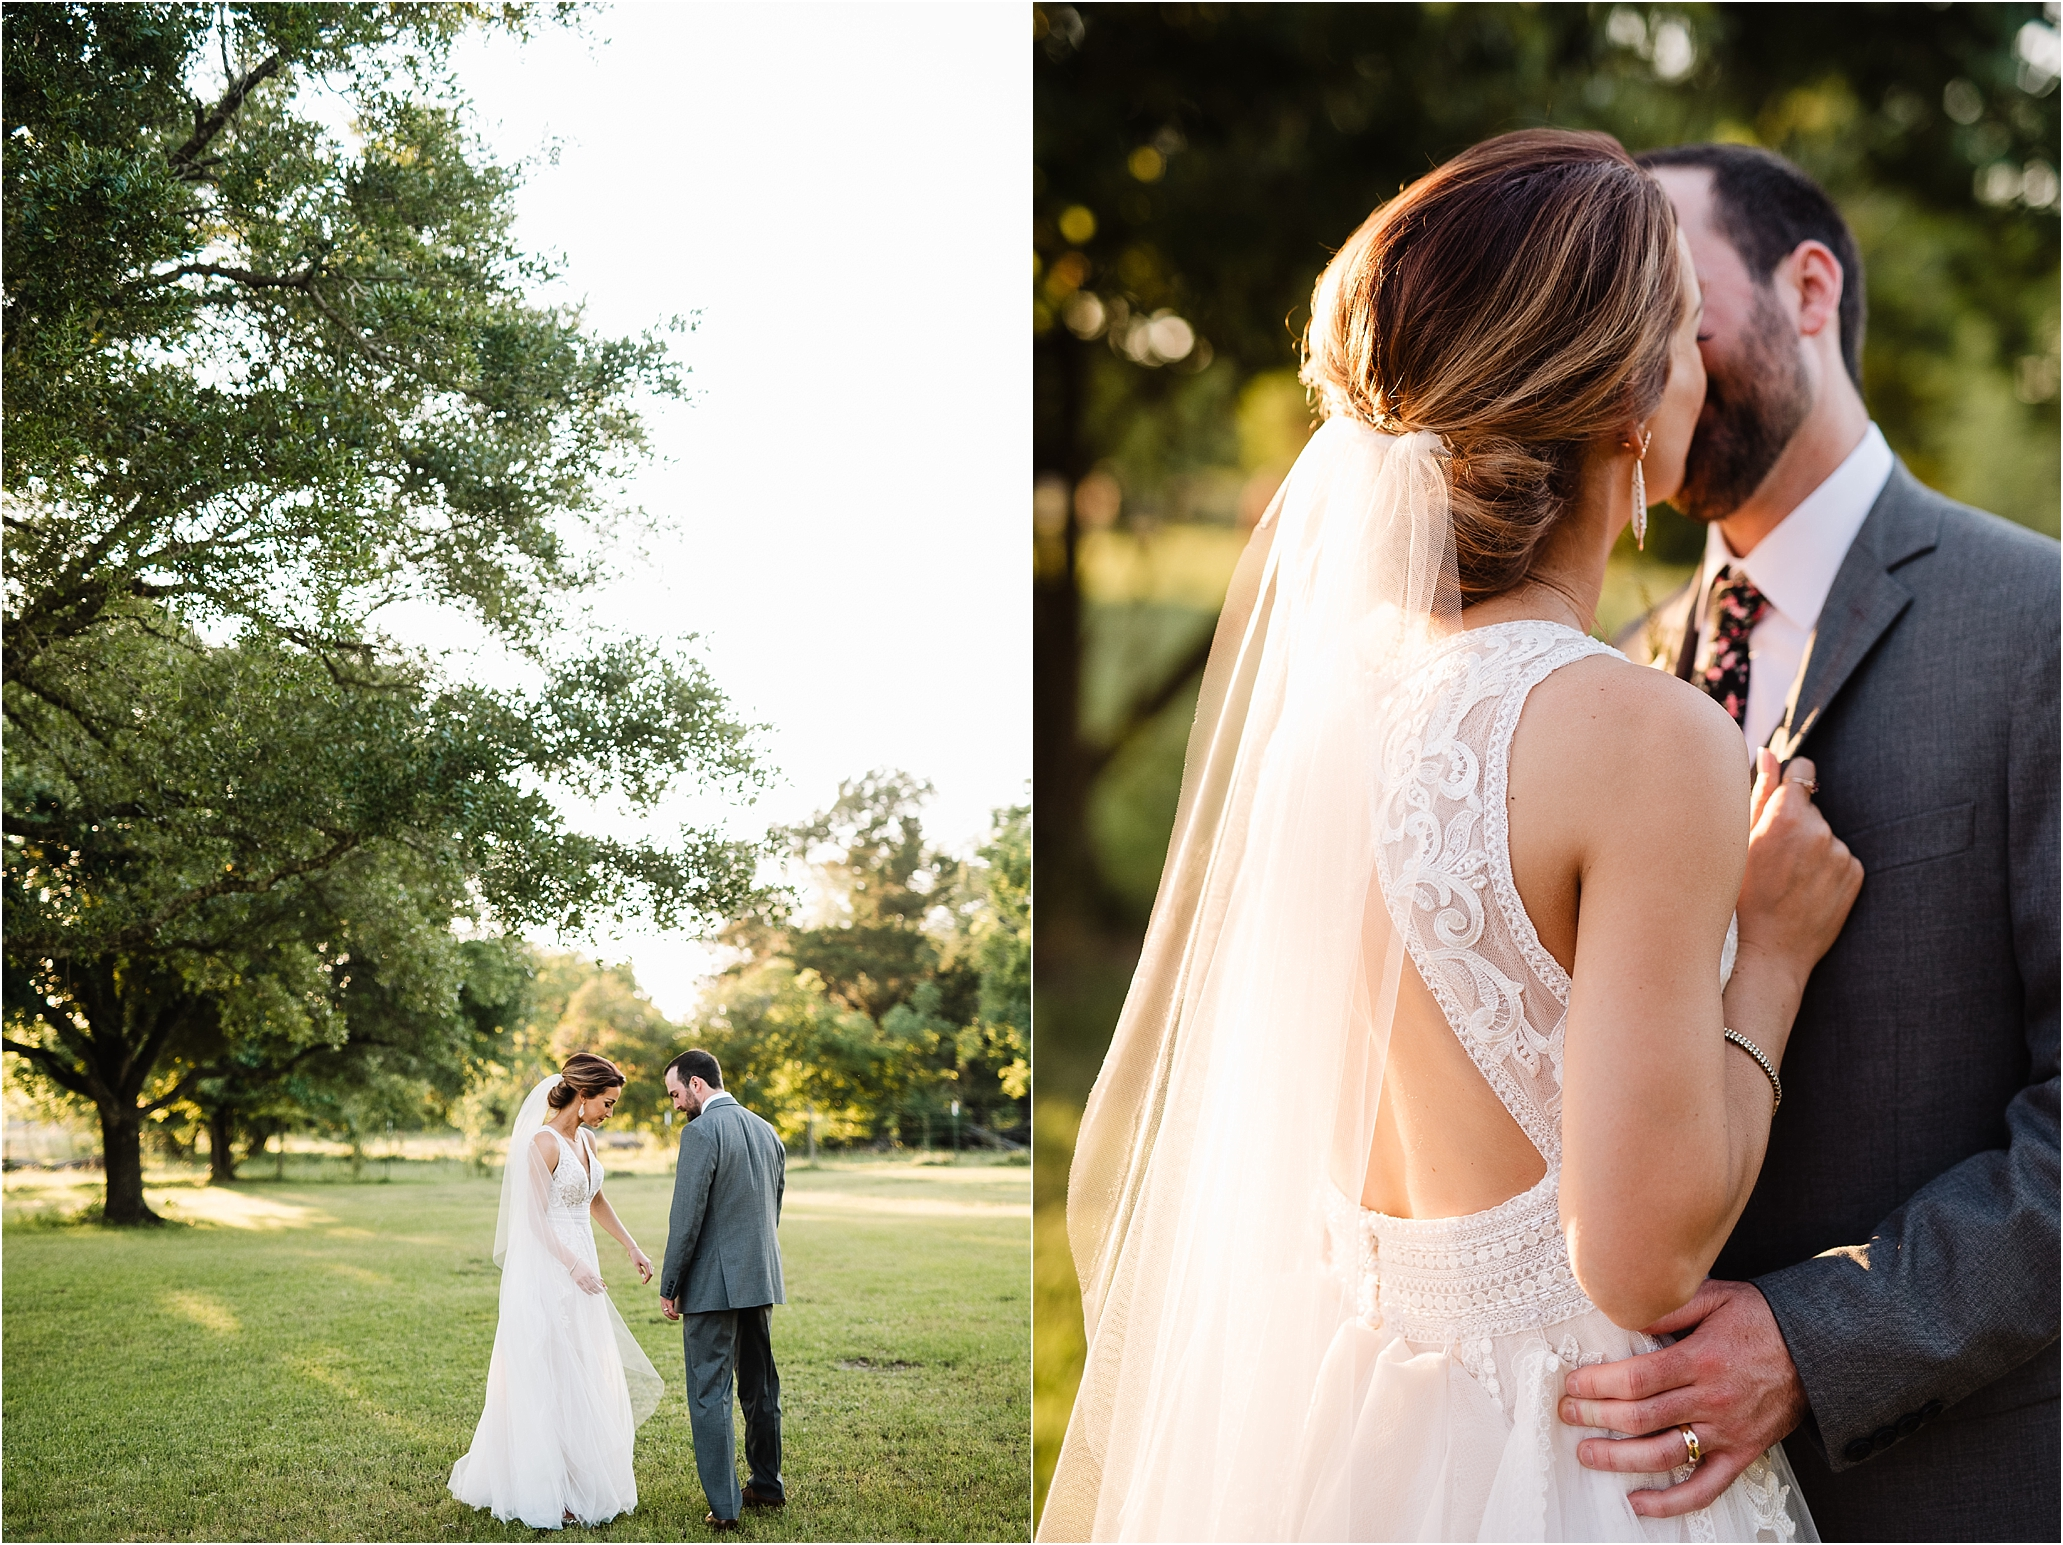 PattisonHouse_TexasWeddingPhotographer_CarlyCrockett&MattBrownWedding_0073.jpg